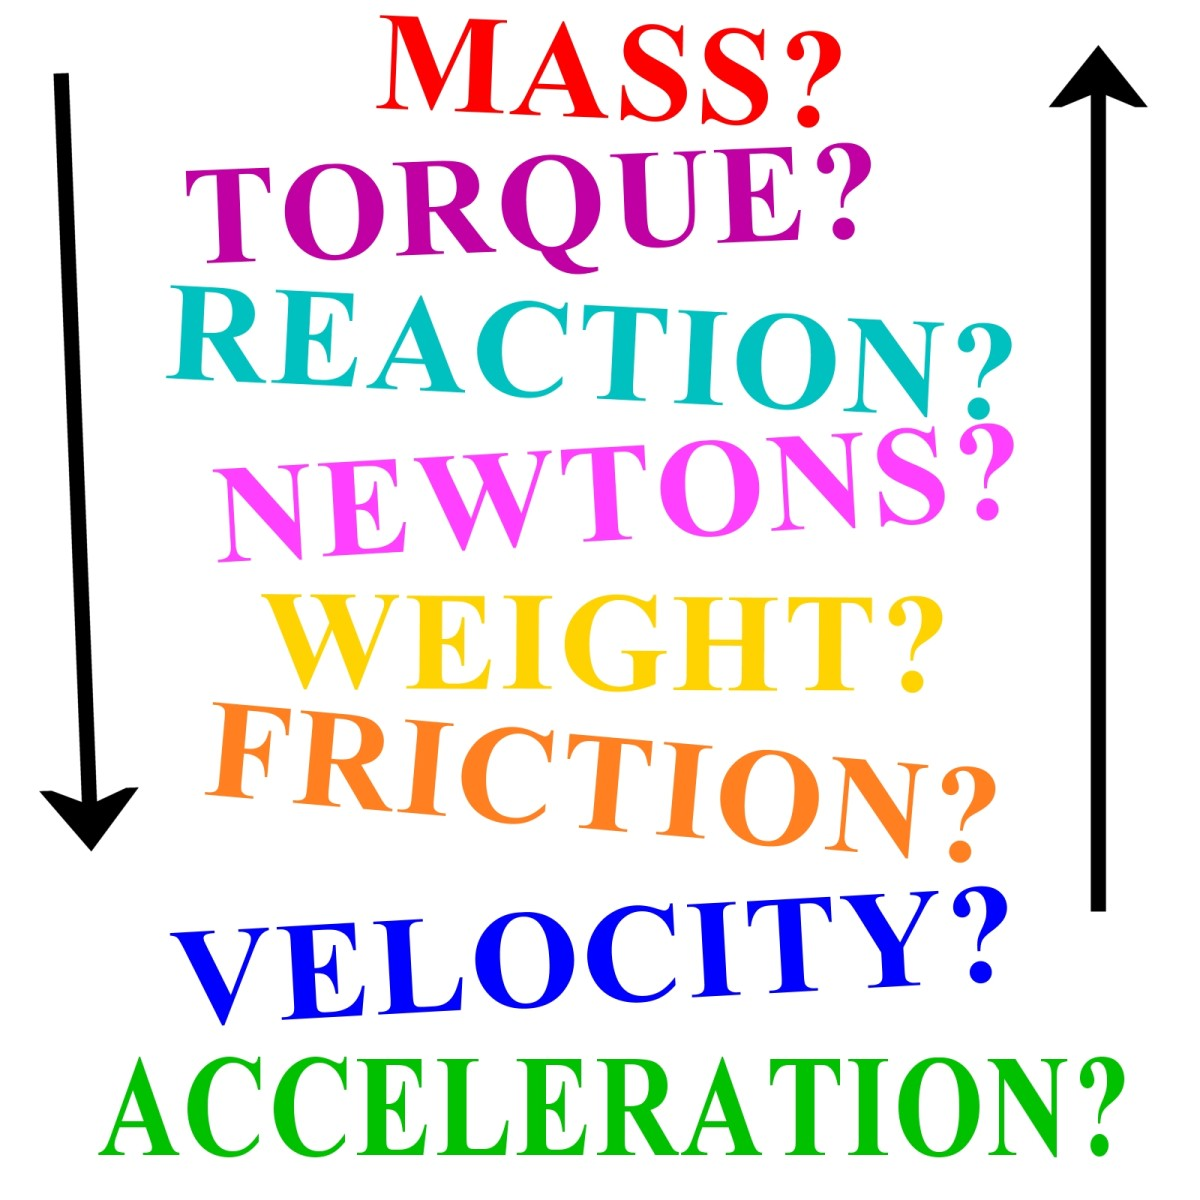 Newton's Laws of Motion and Understanding Force, Mass, Acceleration, Velocity, Friction, Power and Vectors